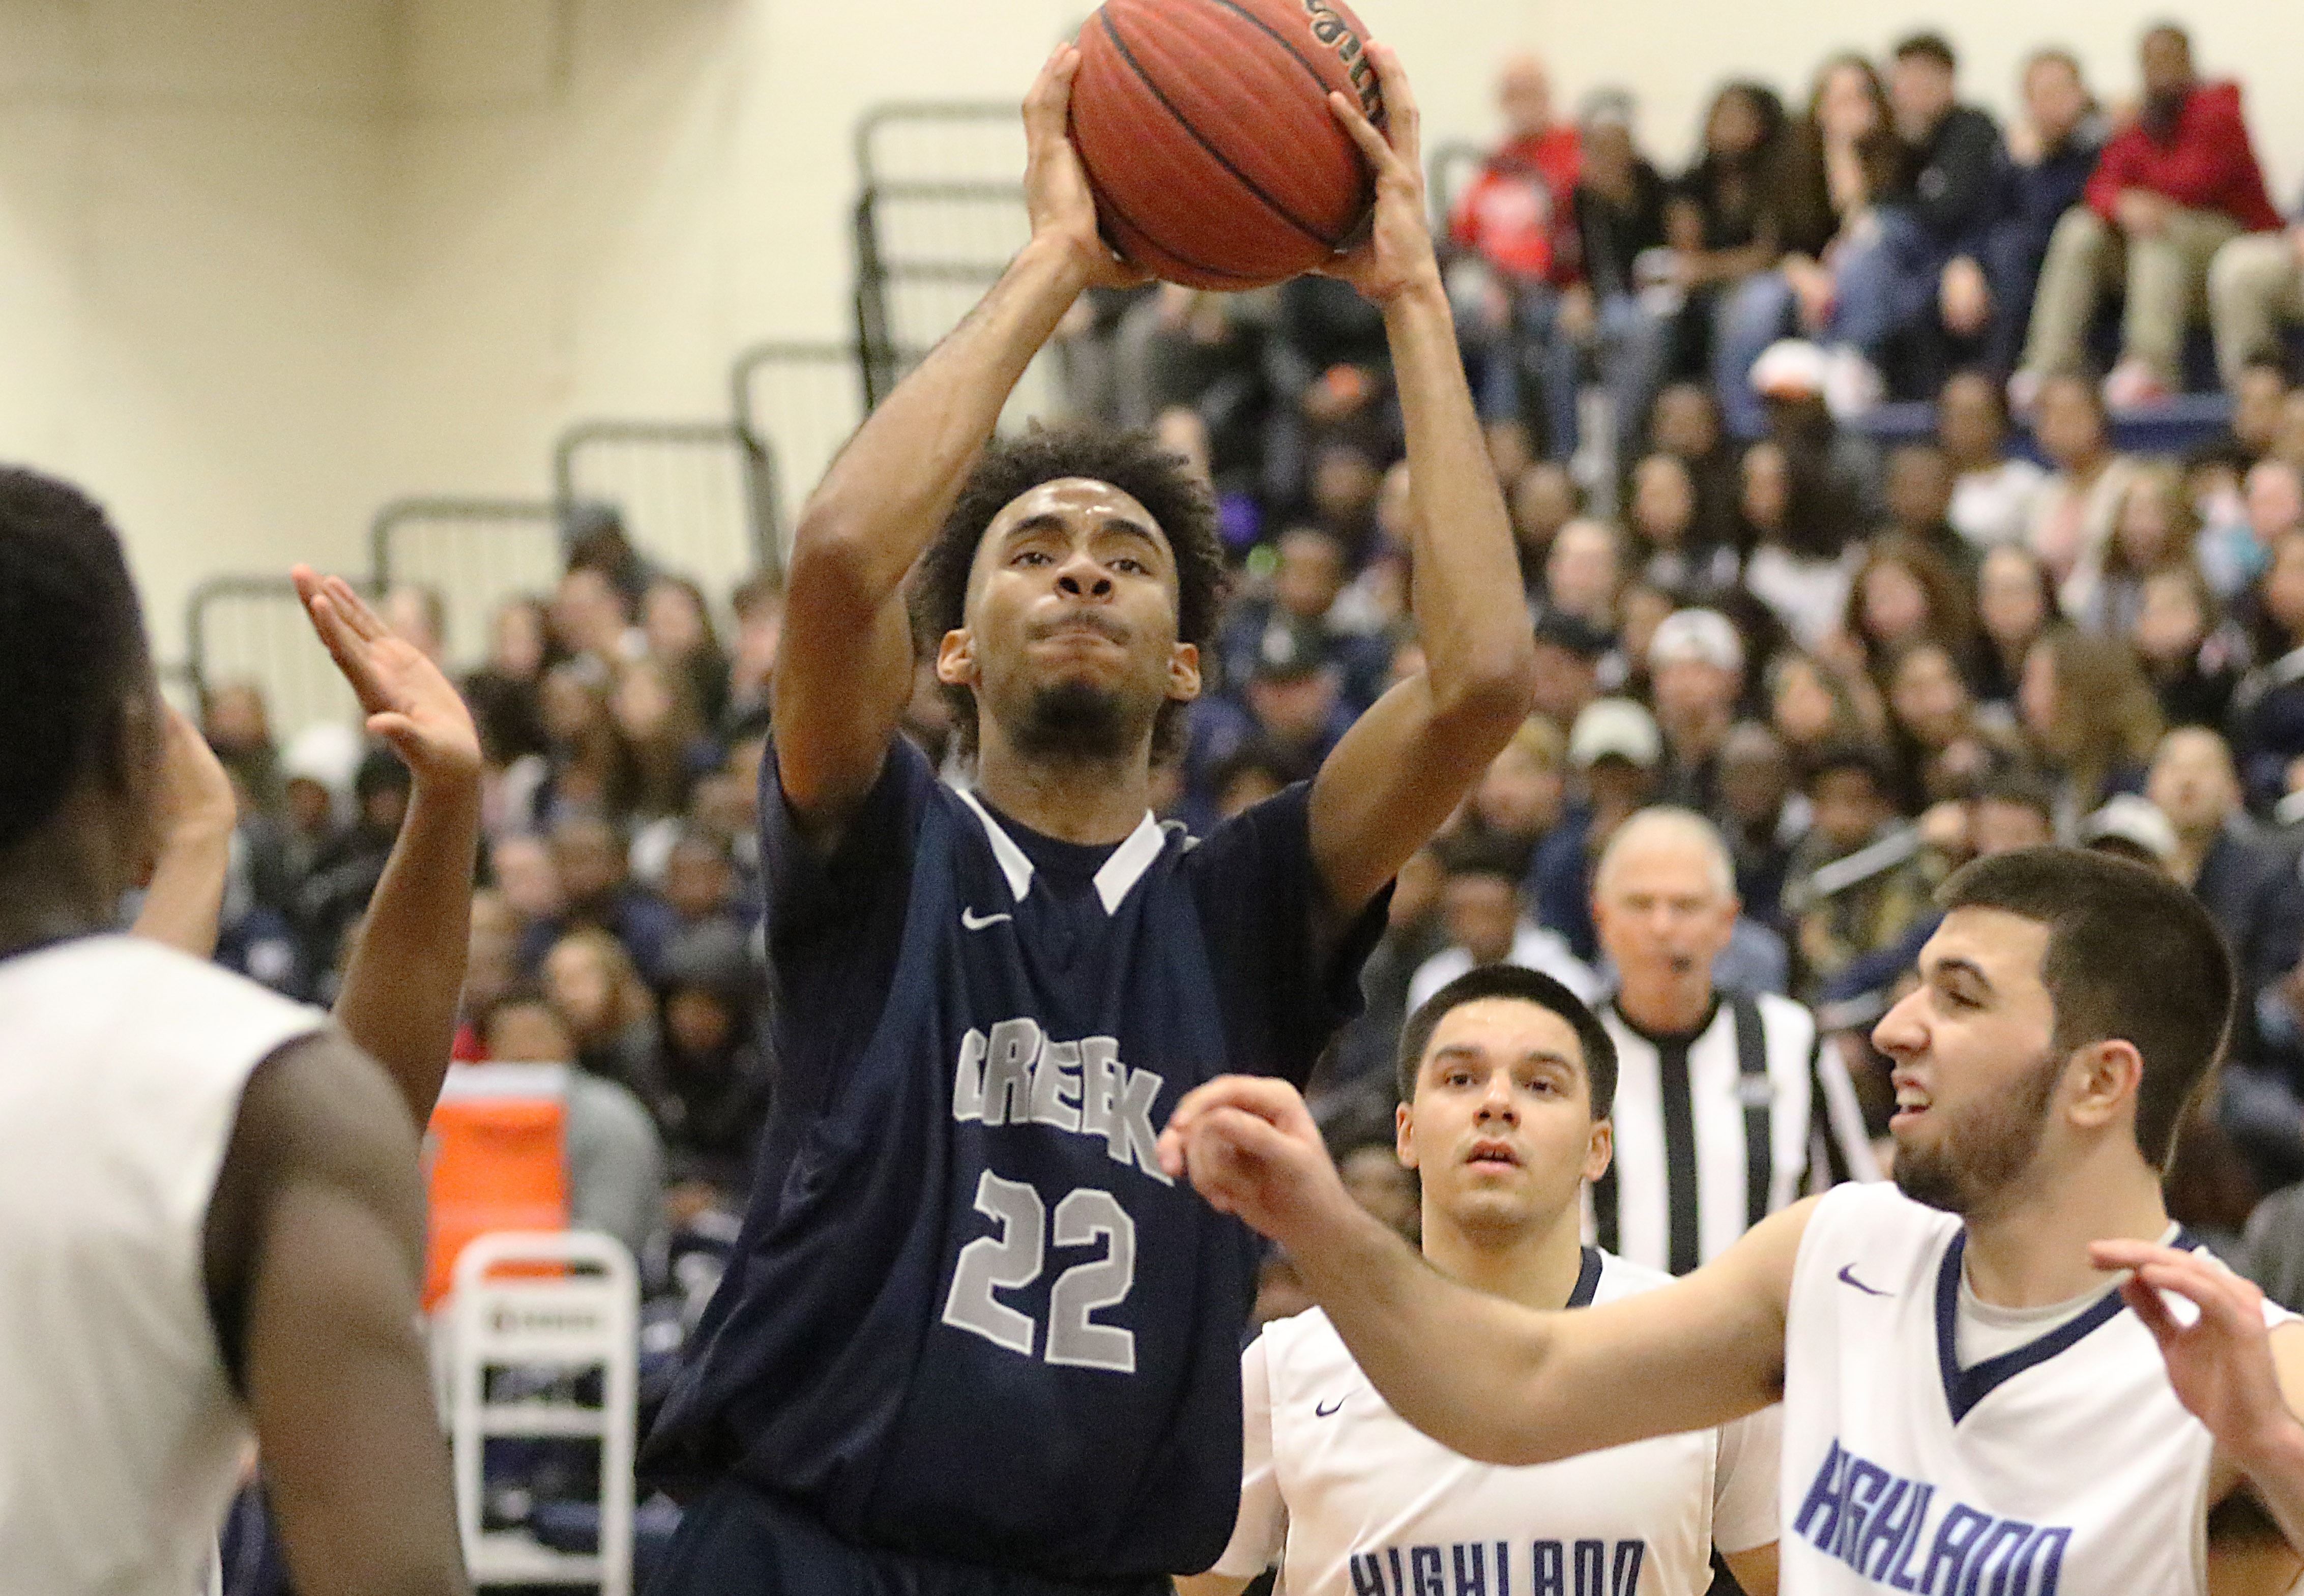 Maurice Murray averaged 17.4 points this season for Timber Creek.